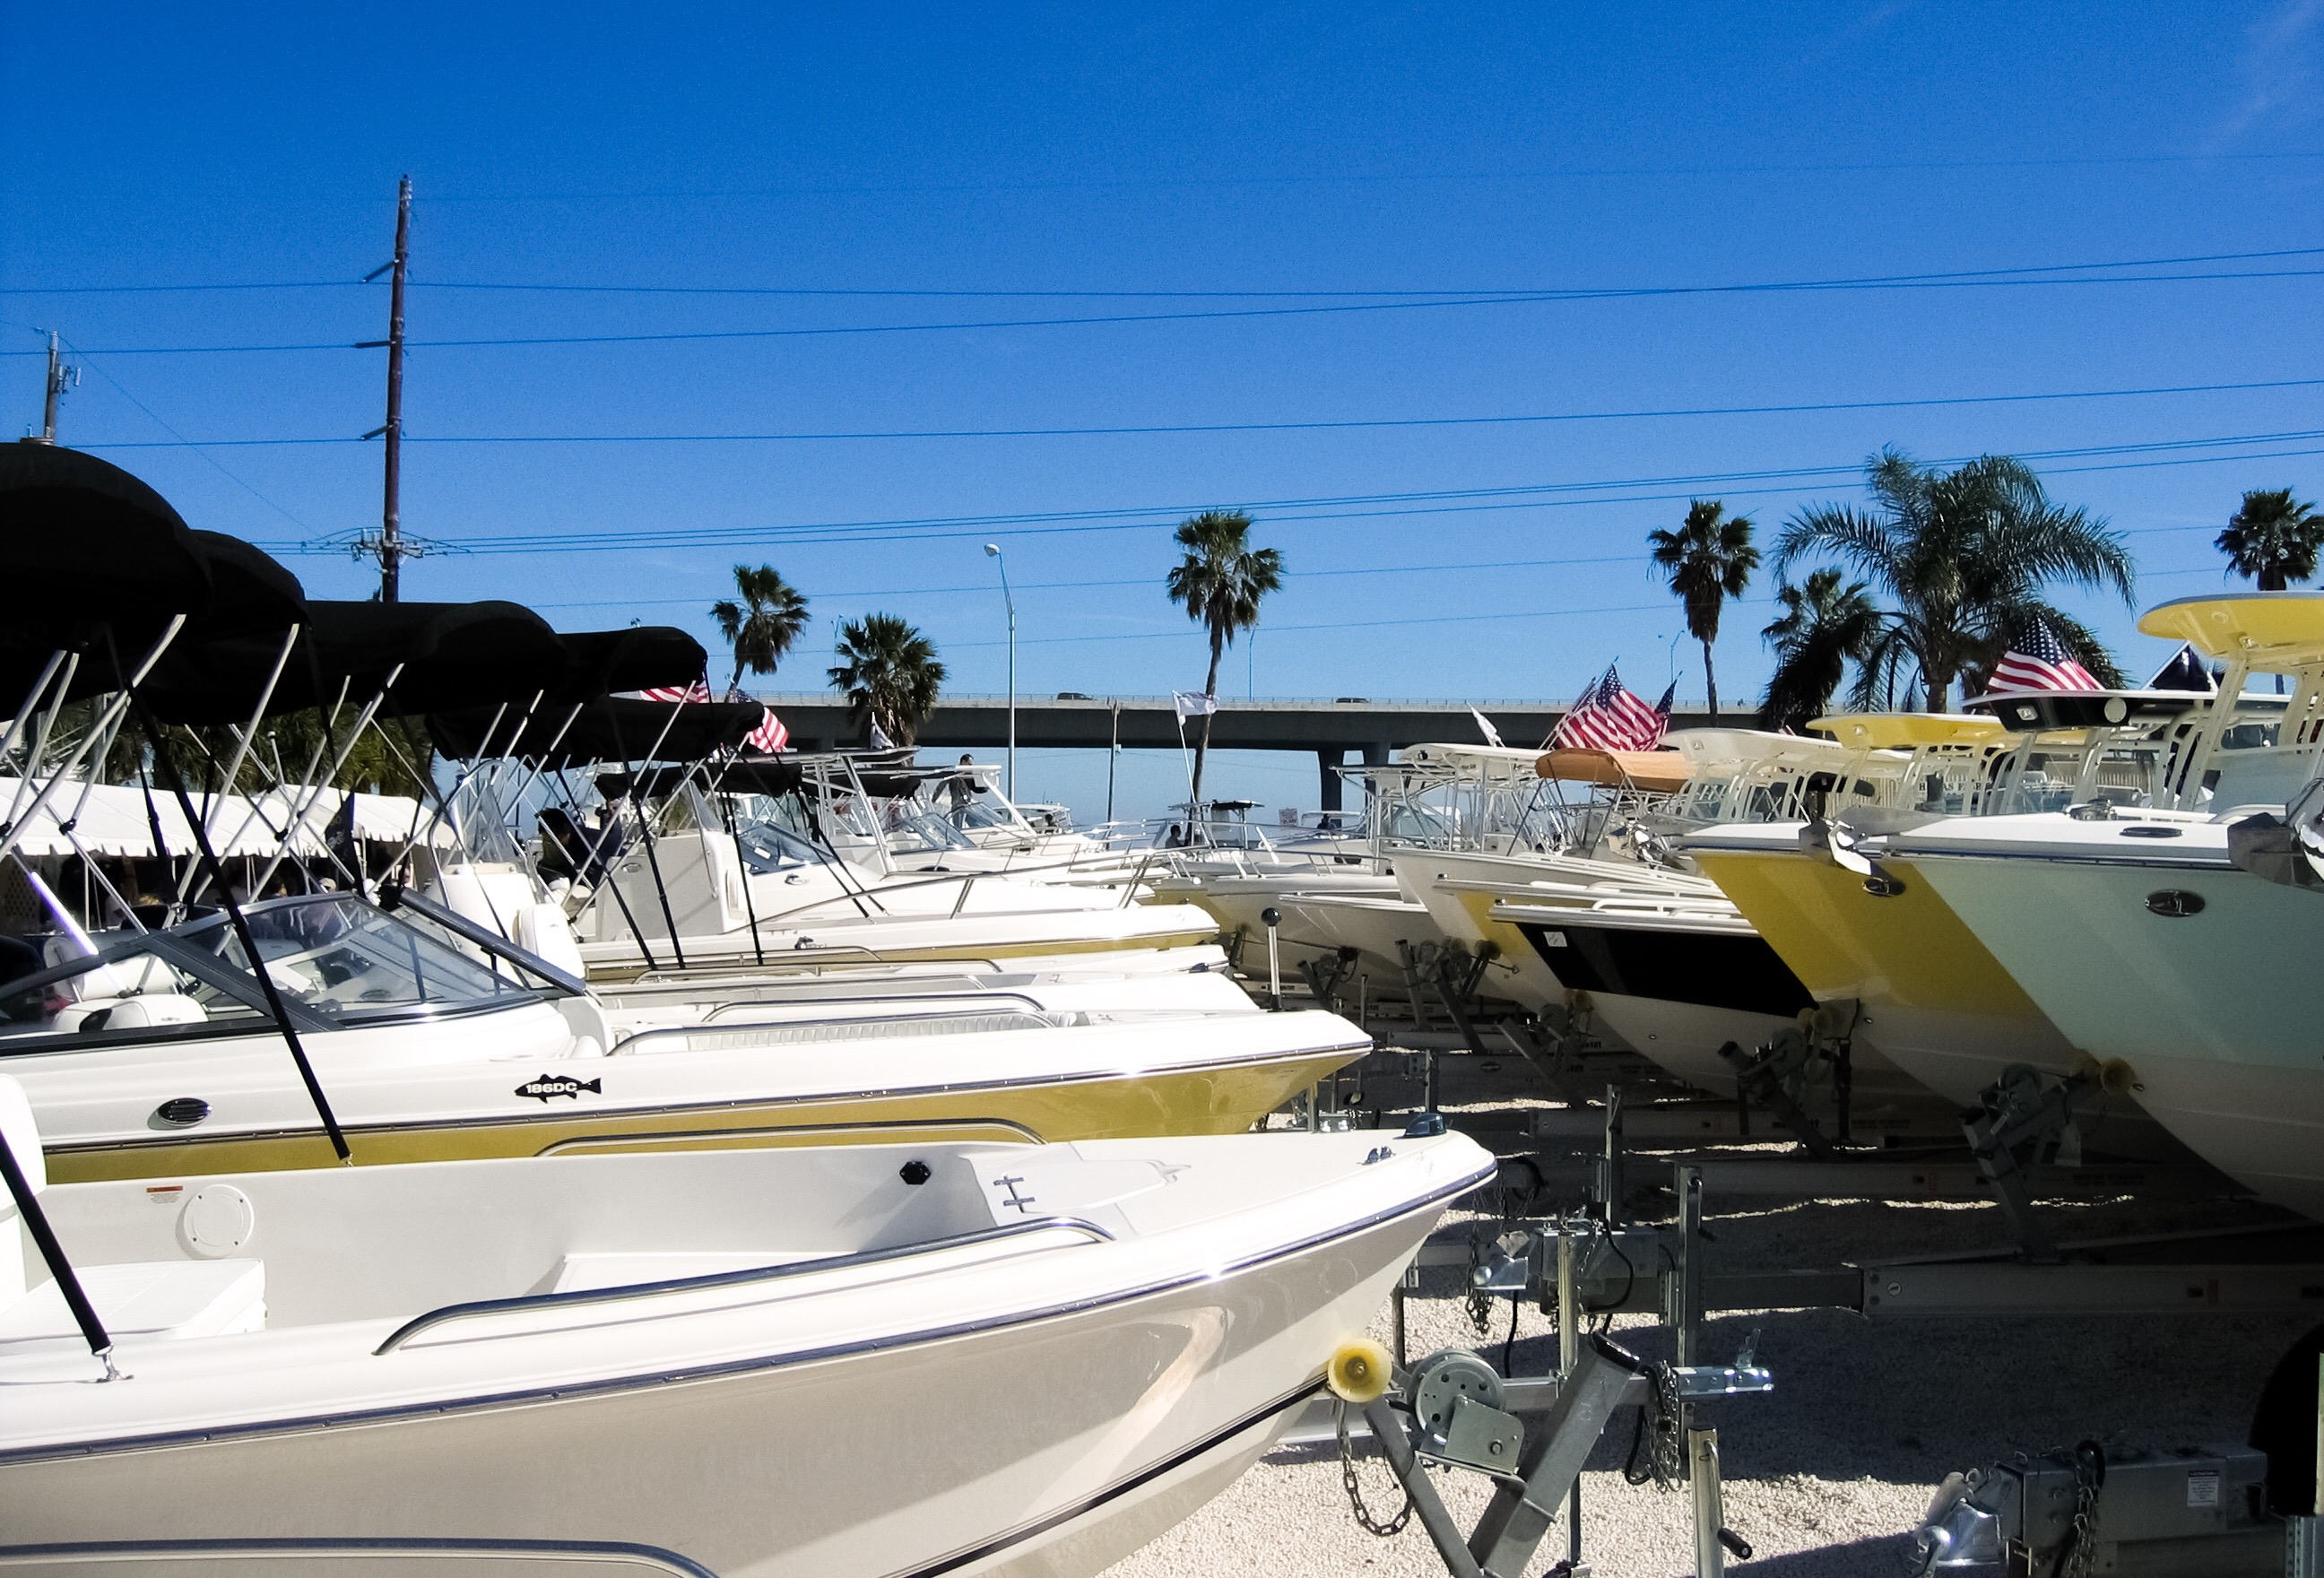 Stuart Boat Show - Small Boats on Trailers - Allsports Productions